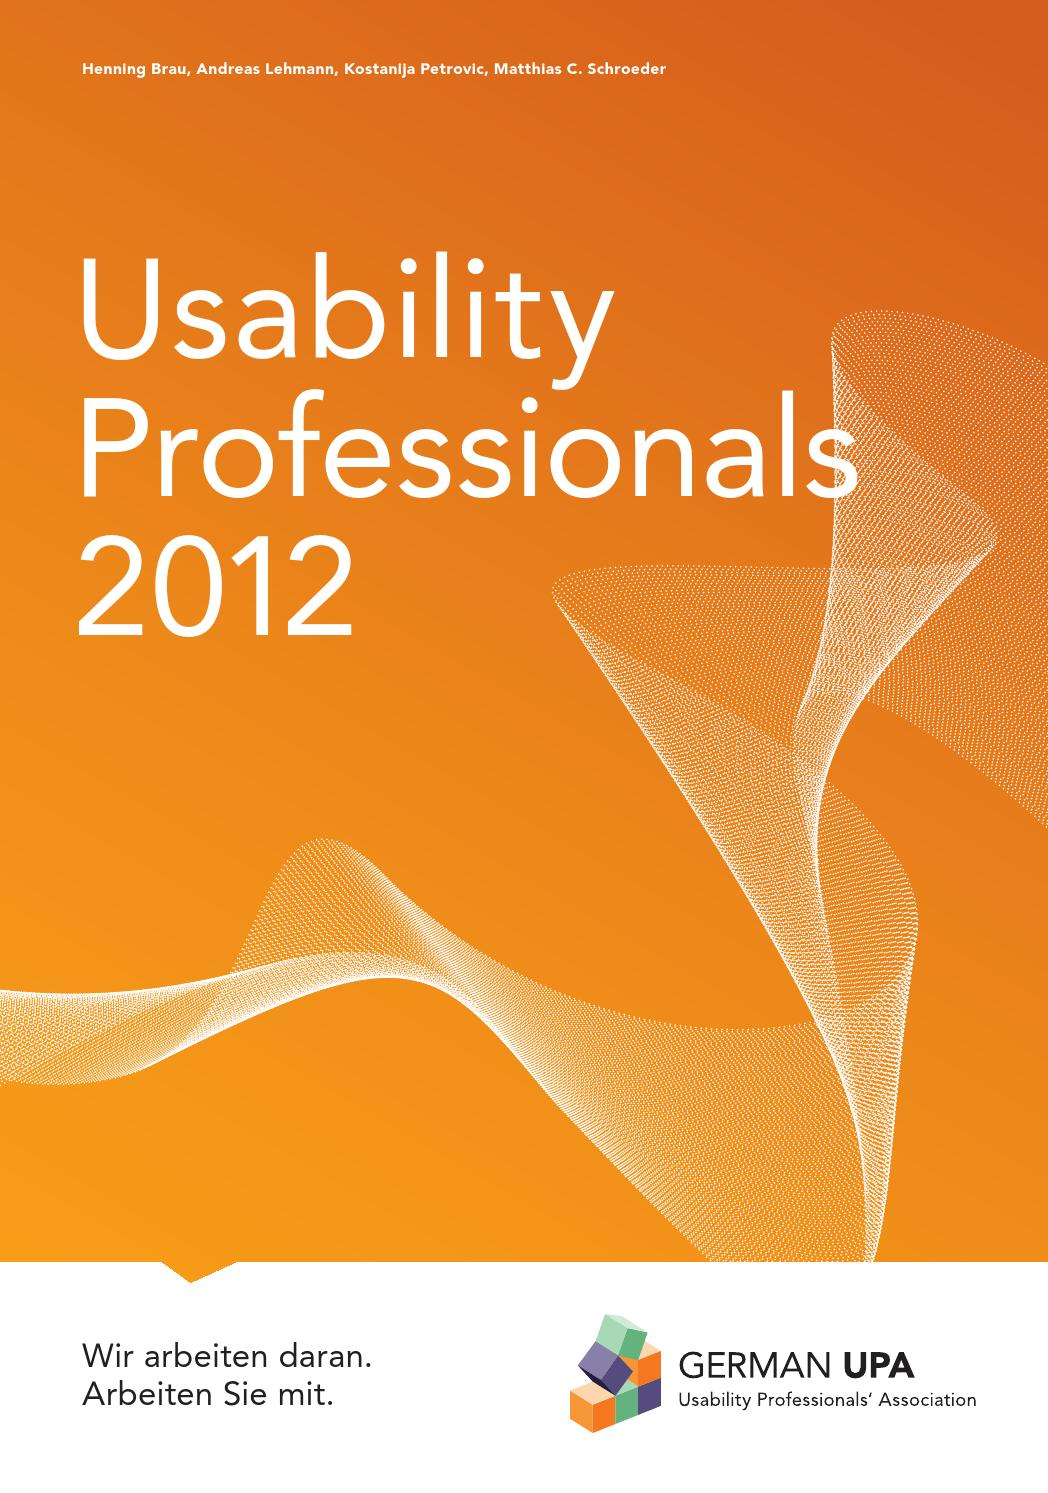 Usability Professionals 2012 - Tagungsband by German UPA e.V. - issuu